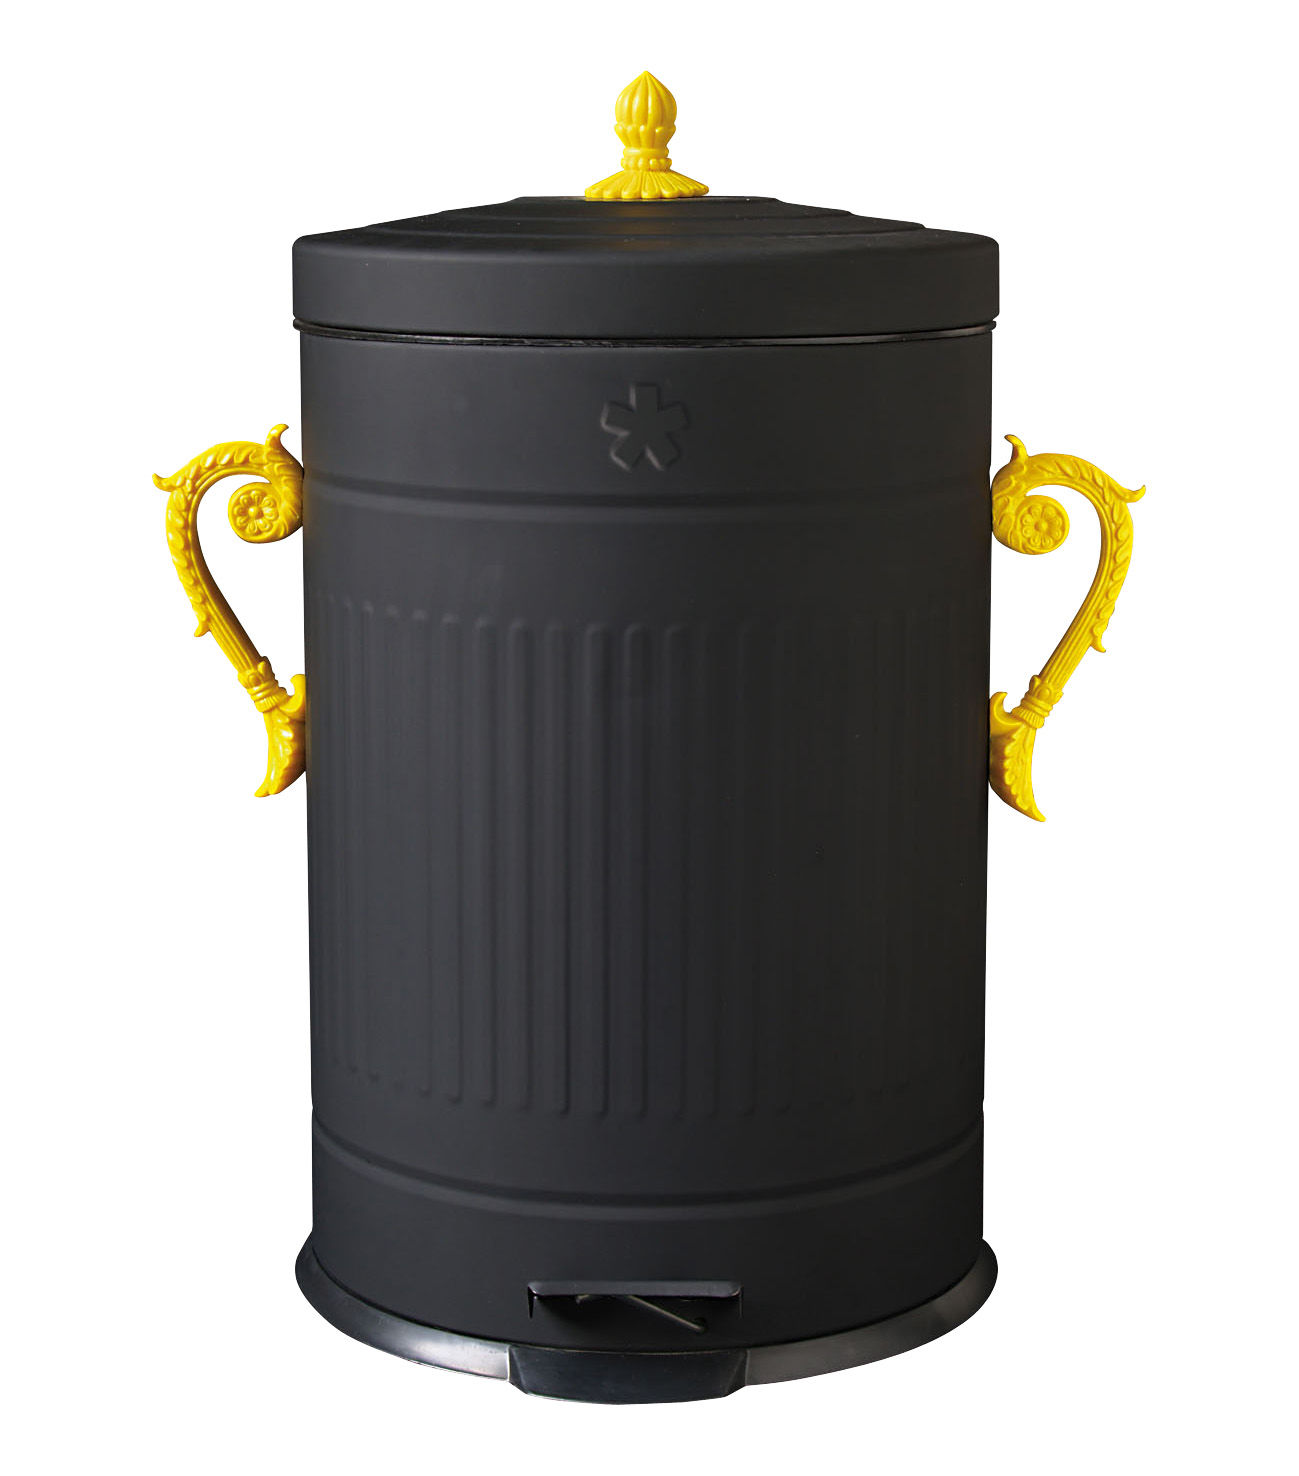 Trash chic bin dustbin black yellow handles by seletti for Poubelle cuisine design